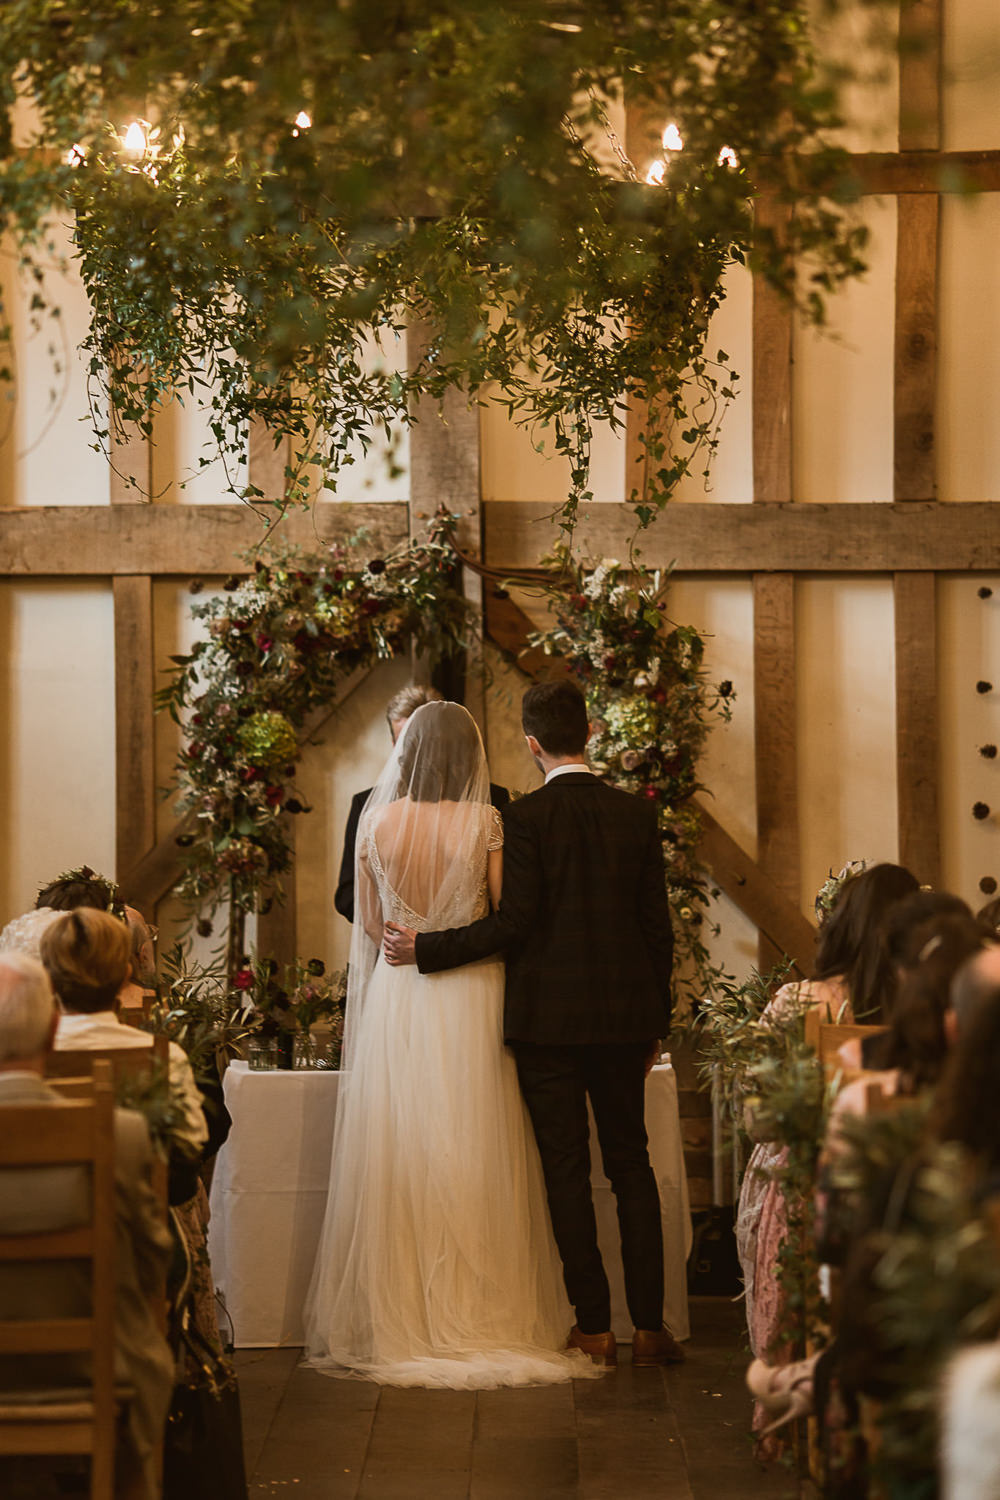 Arch Flower Floral Backdrop Ceremony Aisle Greenery Foliage Gate Street Barn Wedding The Springles